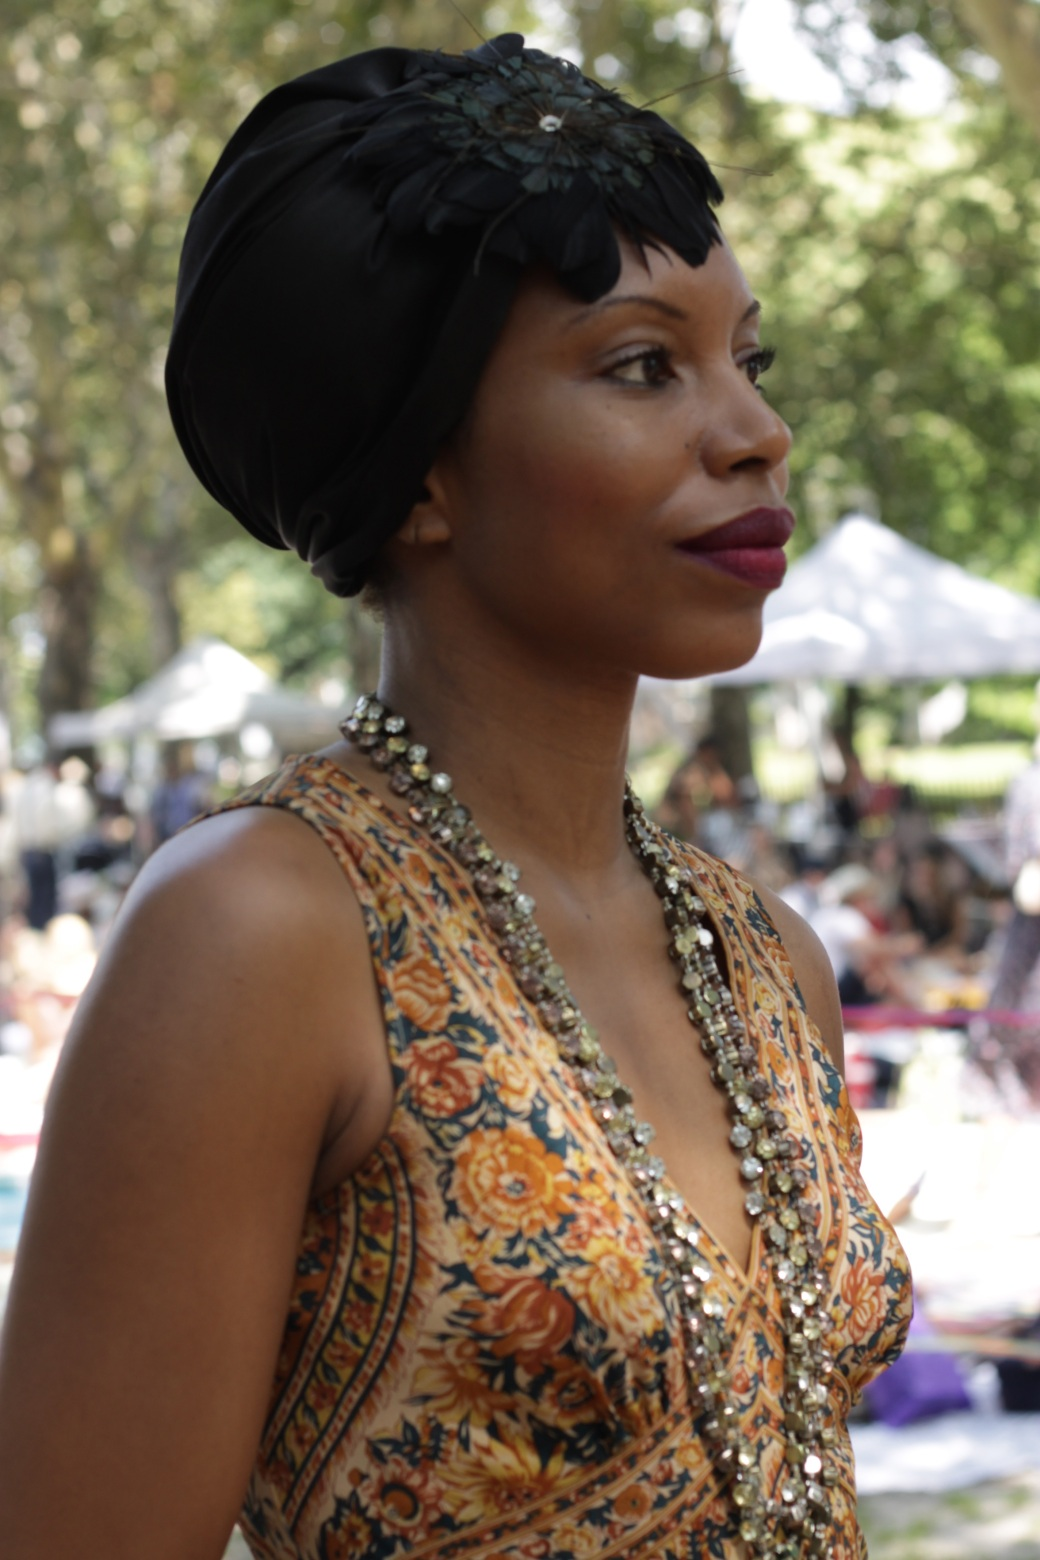 new york city governors island jazz age lawn party august 17 2014 40